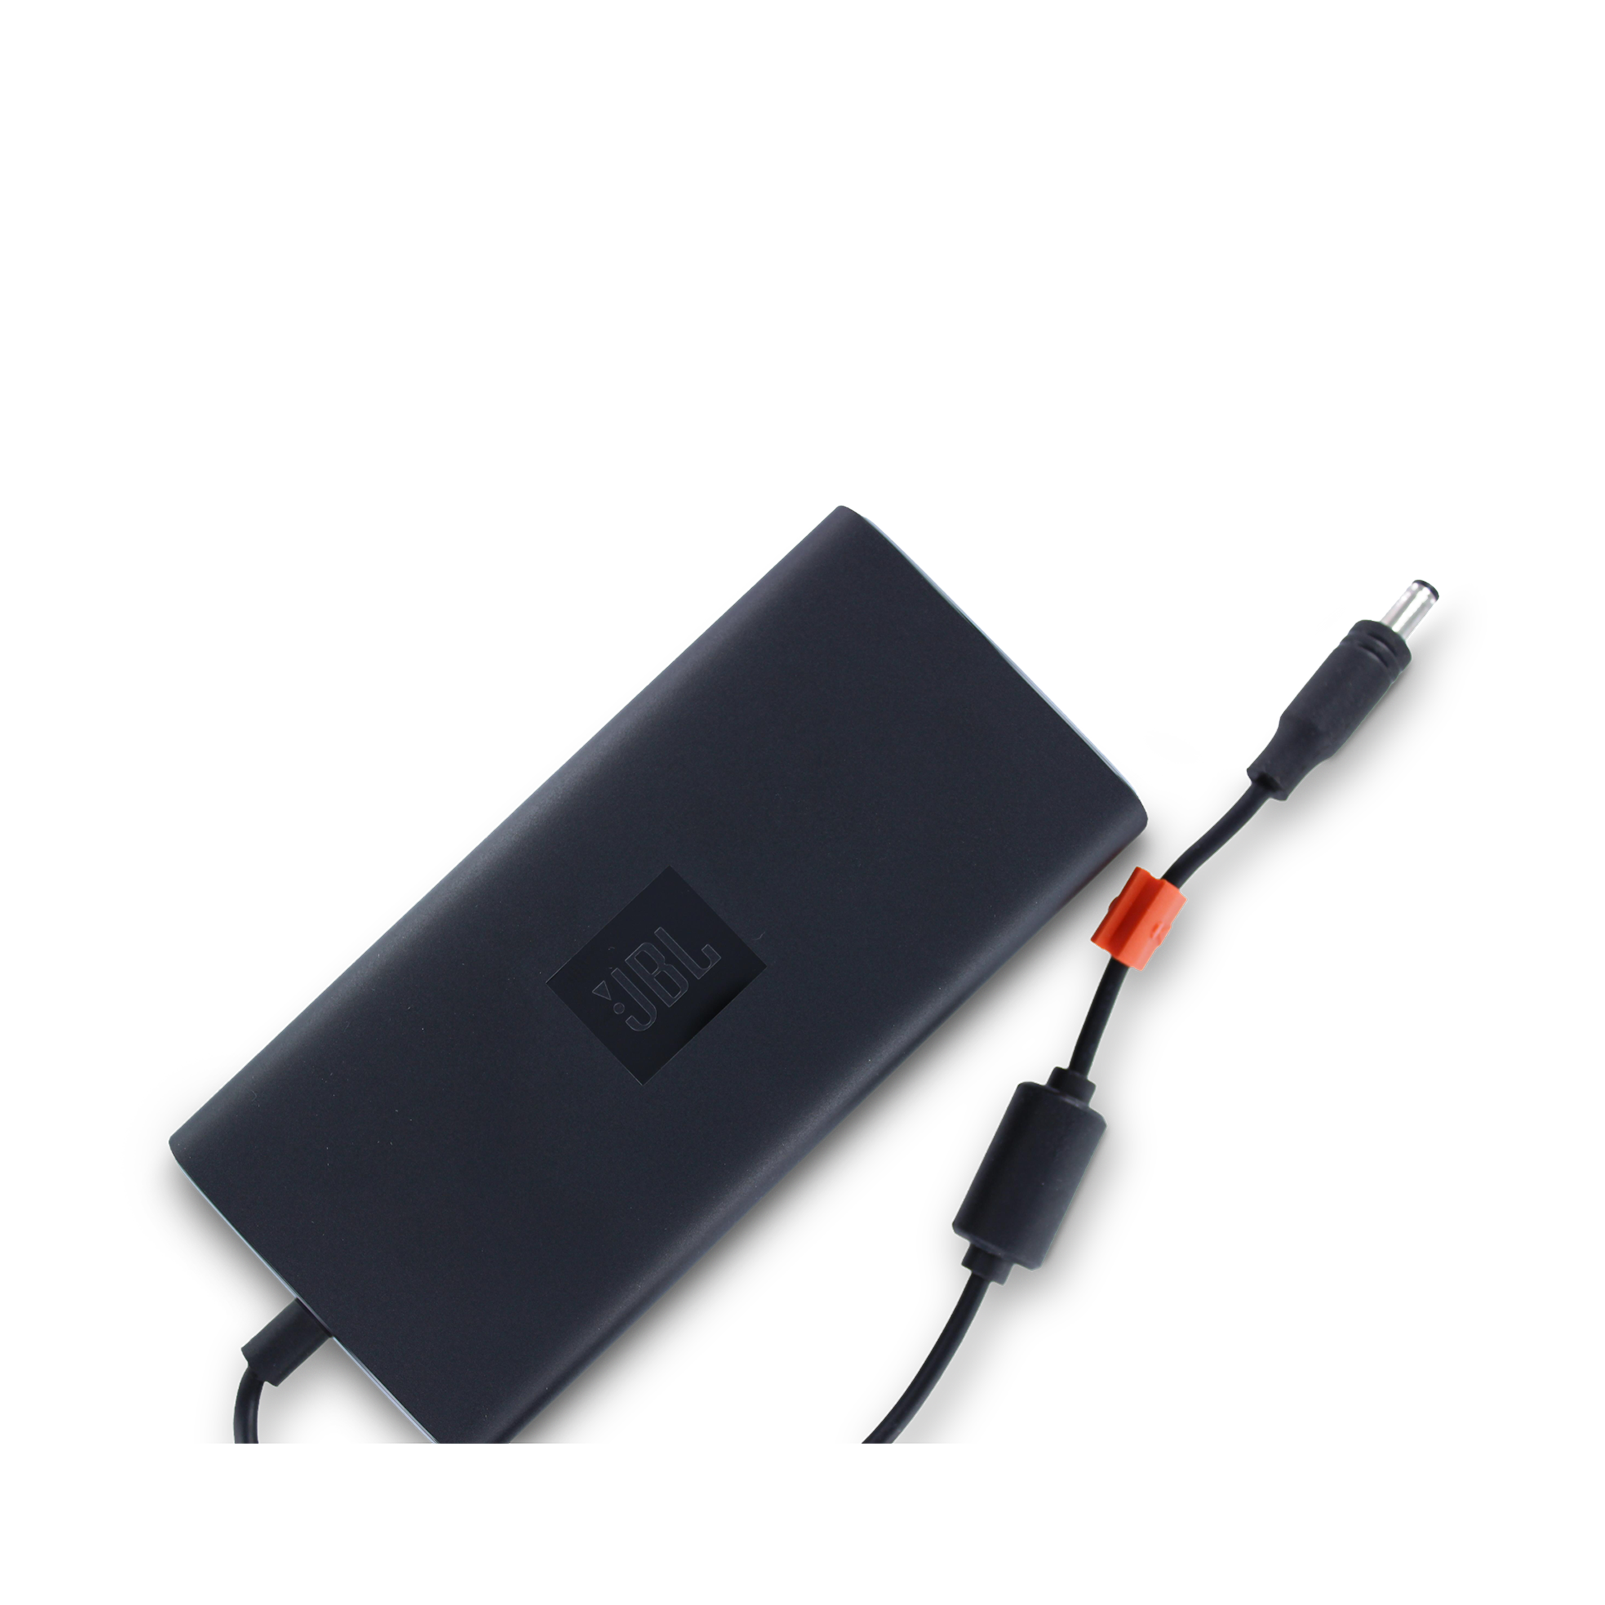 JBL Power adapter for Boombox - Black - Power adaptor - Hero